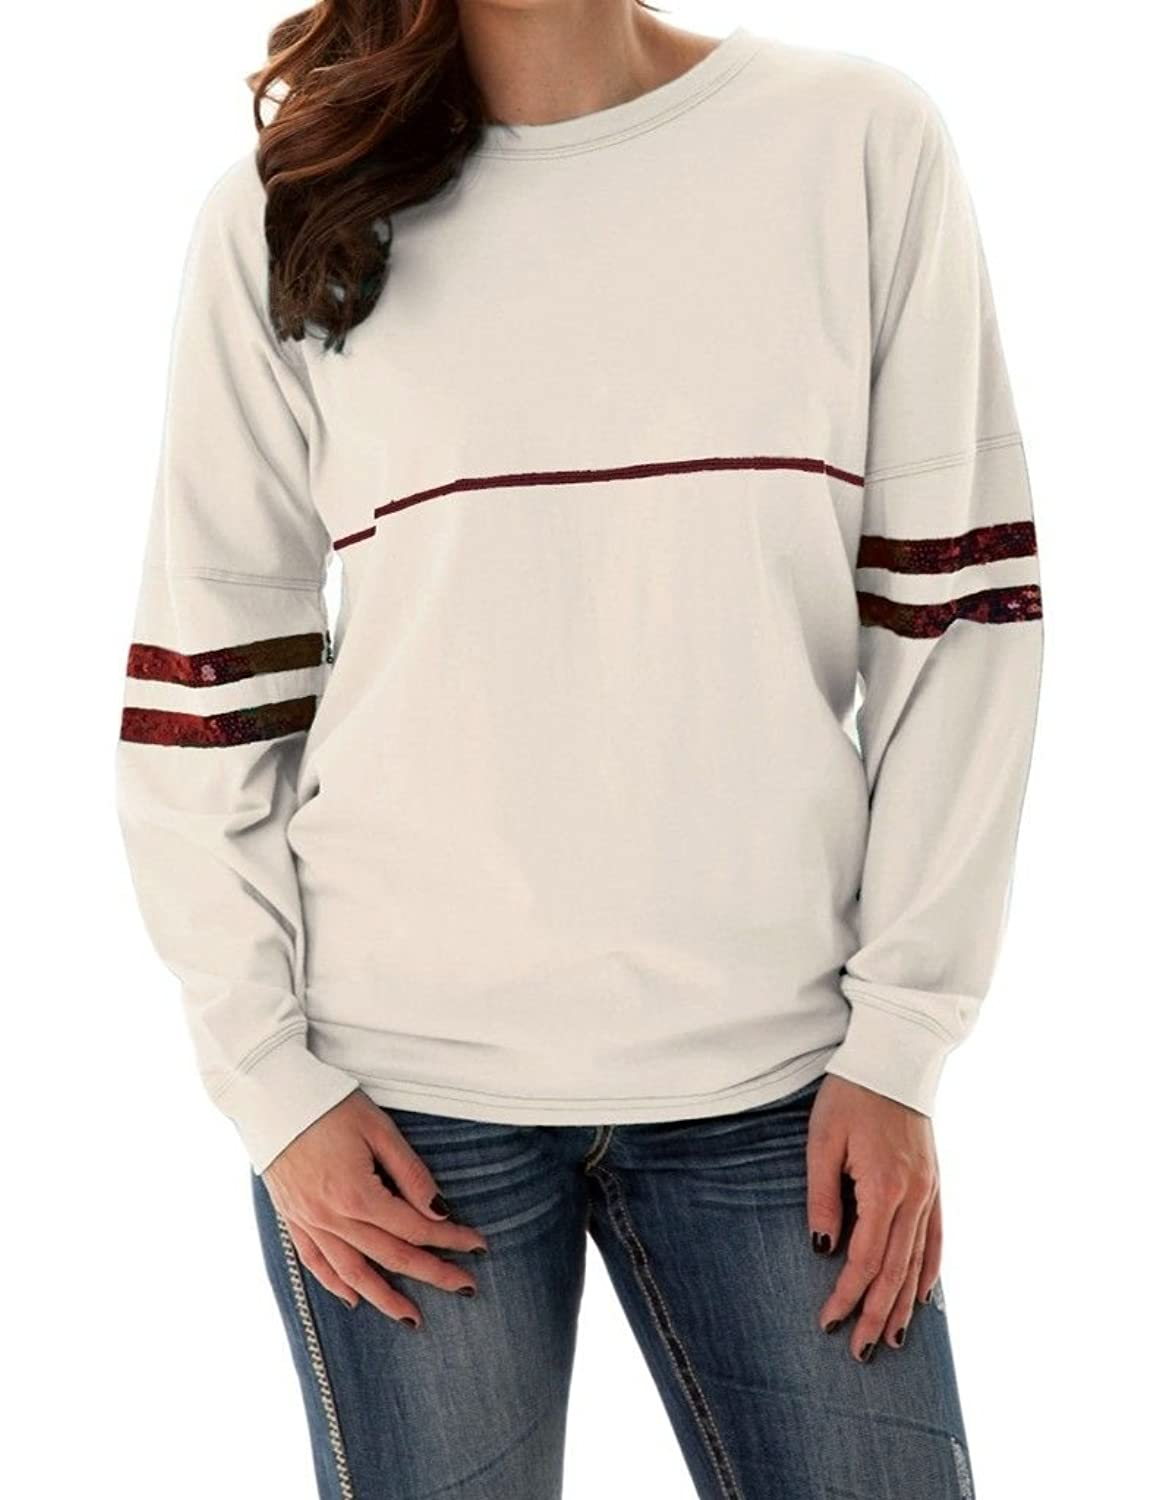 Cowgirl Tuff Co. Womens Cream Long Sleeve Tee with Sequin